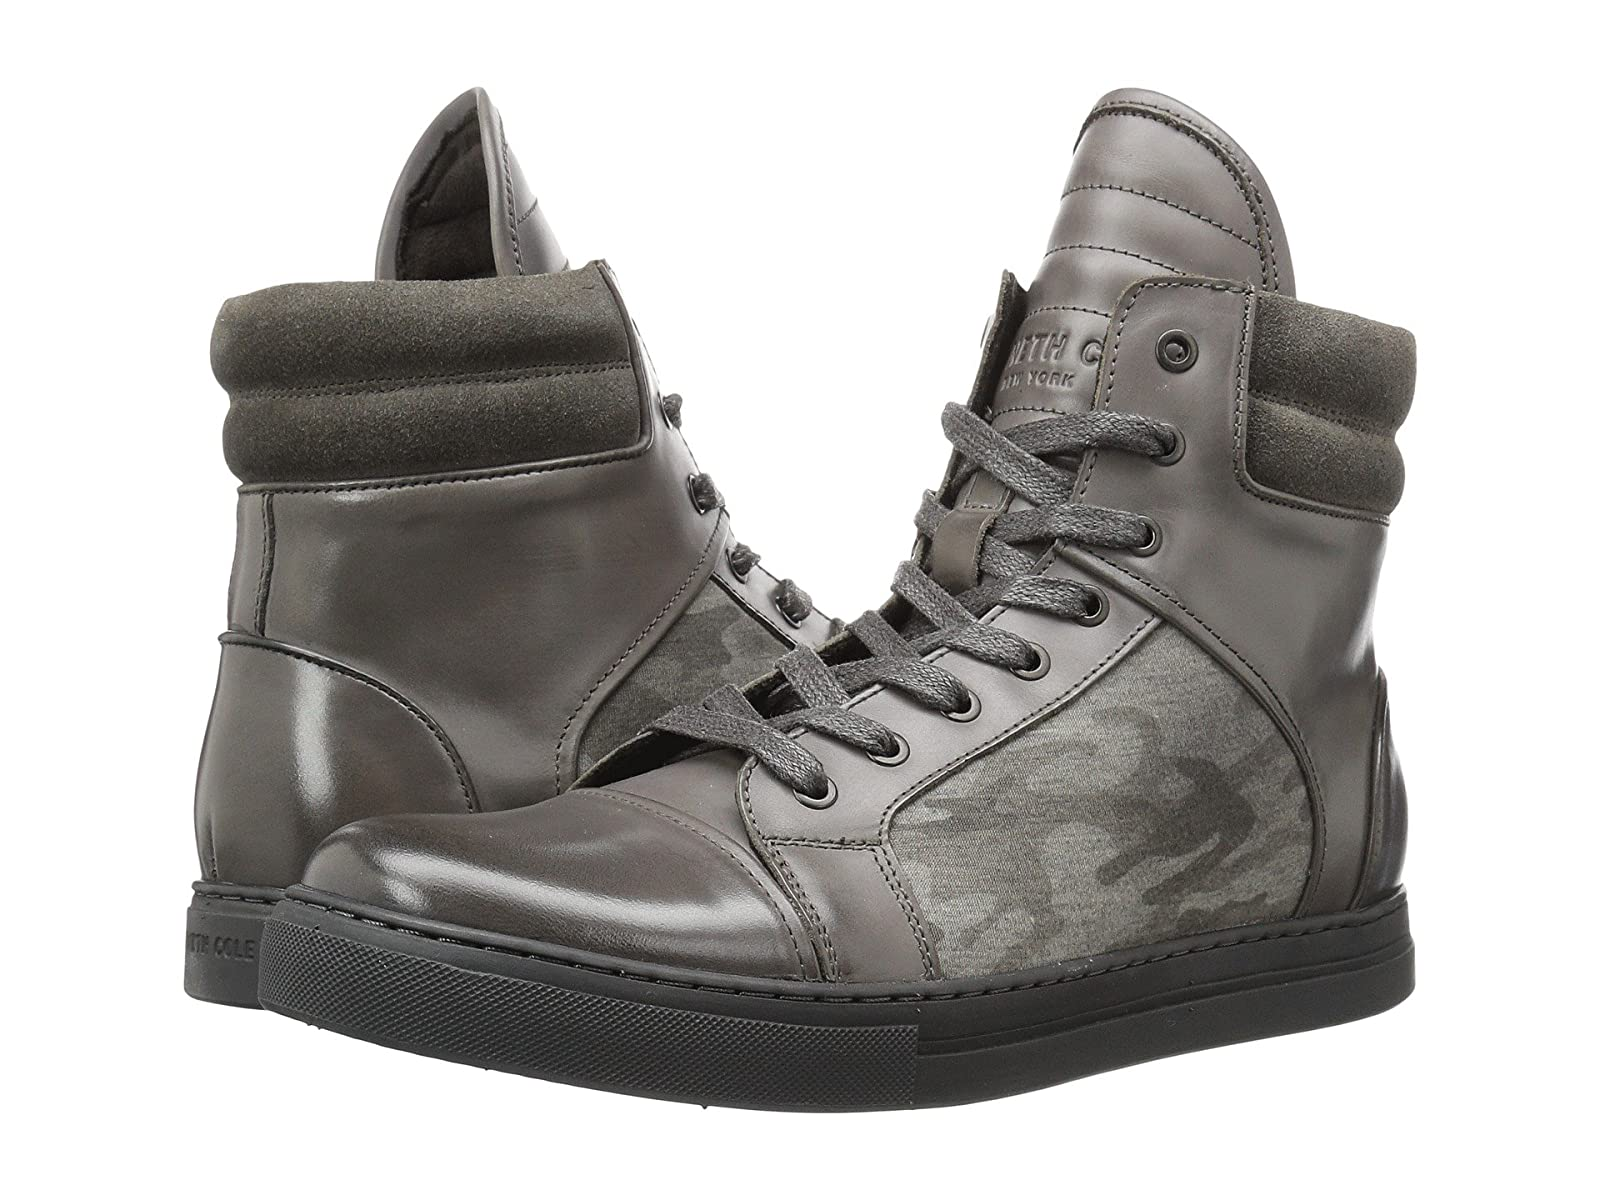 Kenneth Cole New York Double HeaderCheap and distinctive eye-catching shoes